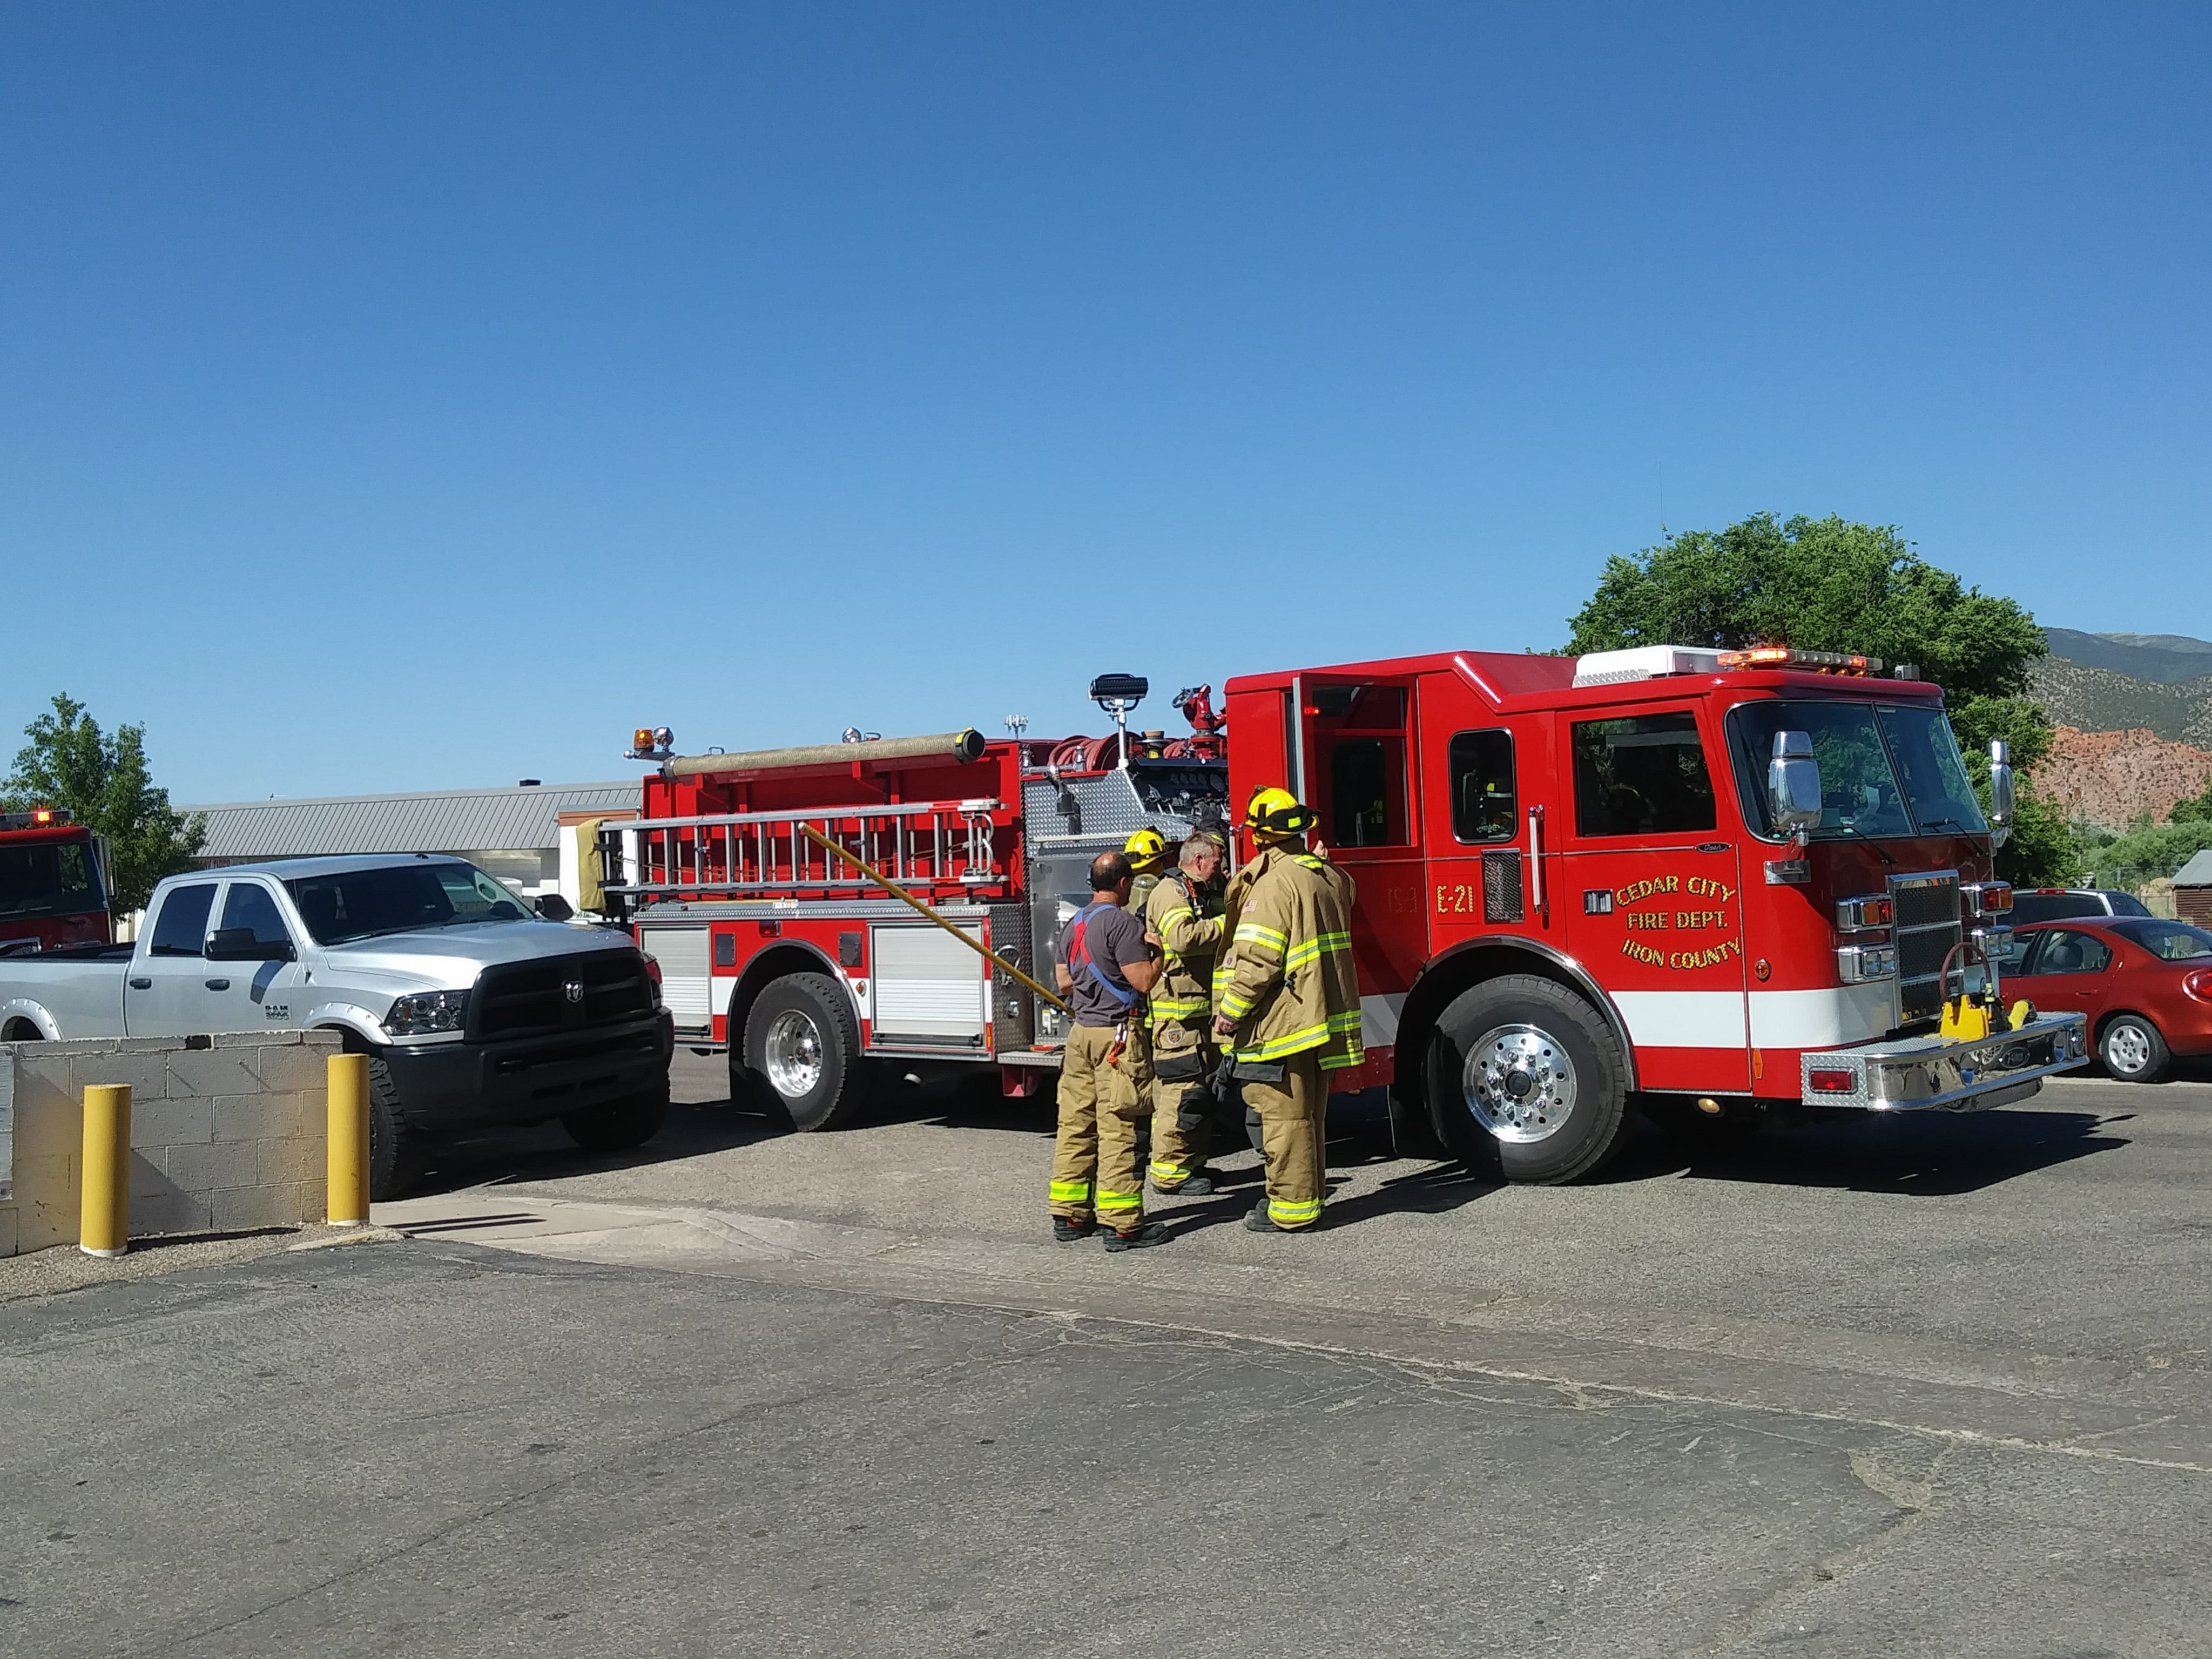 Firefighters Respond To A Fire In A Storage Unit In Cedar City, Utah, June  4, 2018 | Photo Courtesy Of Carin Miller, Cedar City News/St. George News